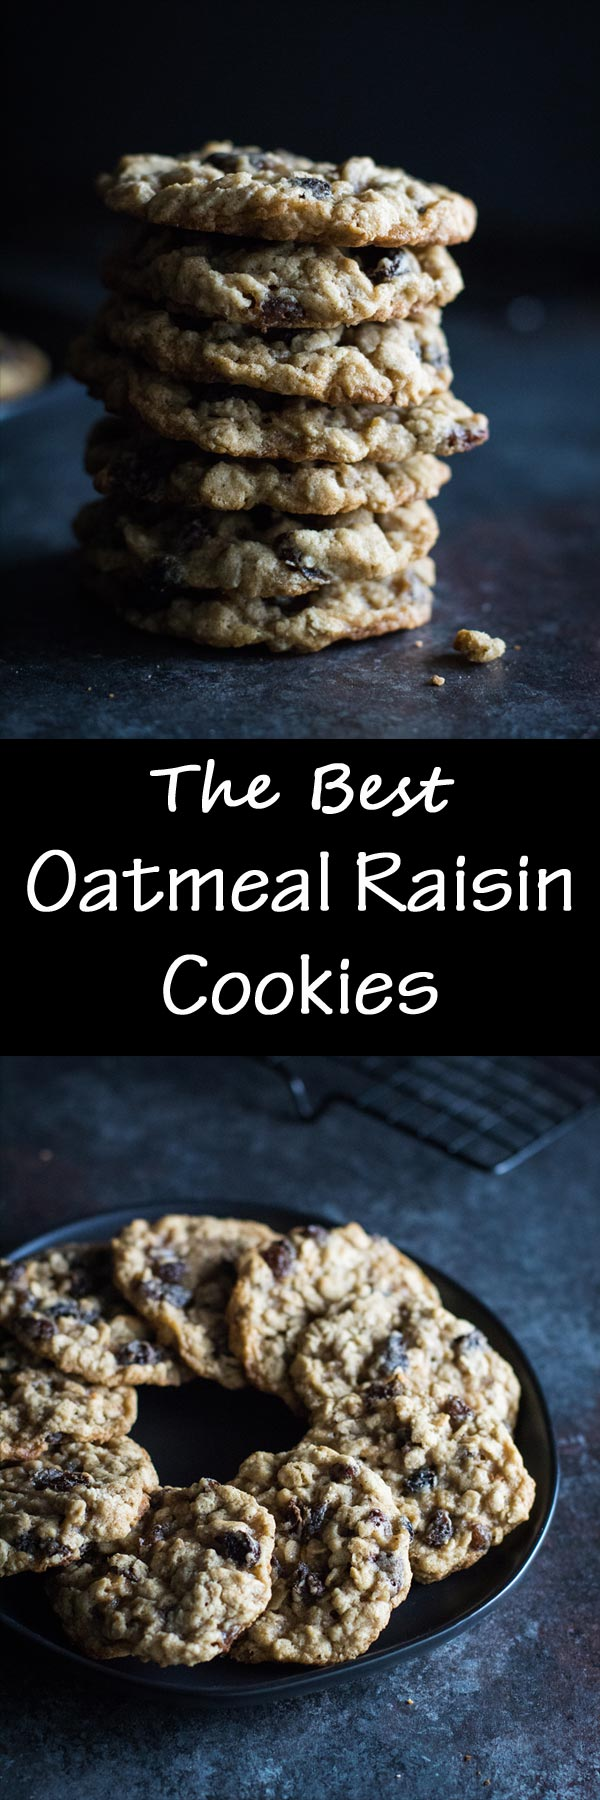 This recipe for oatmeal raisin cookies has directions to make either thin and crispy oatmeal cookies or thick and chewy oatmeal cookies! Maple-soaked raisins help keep these cookies moist and soft!